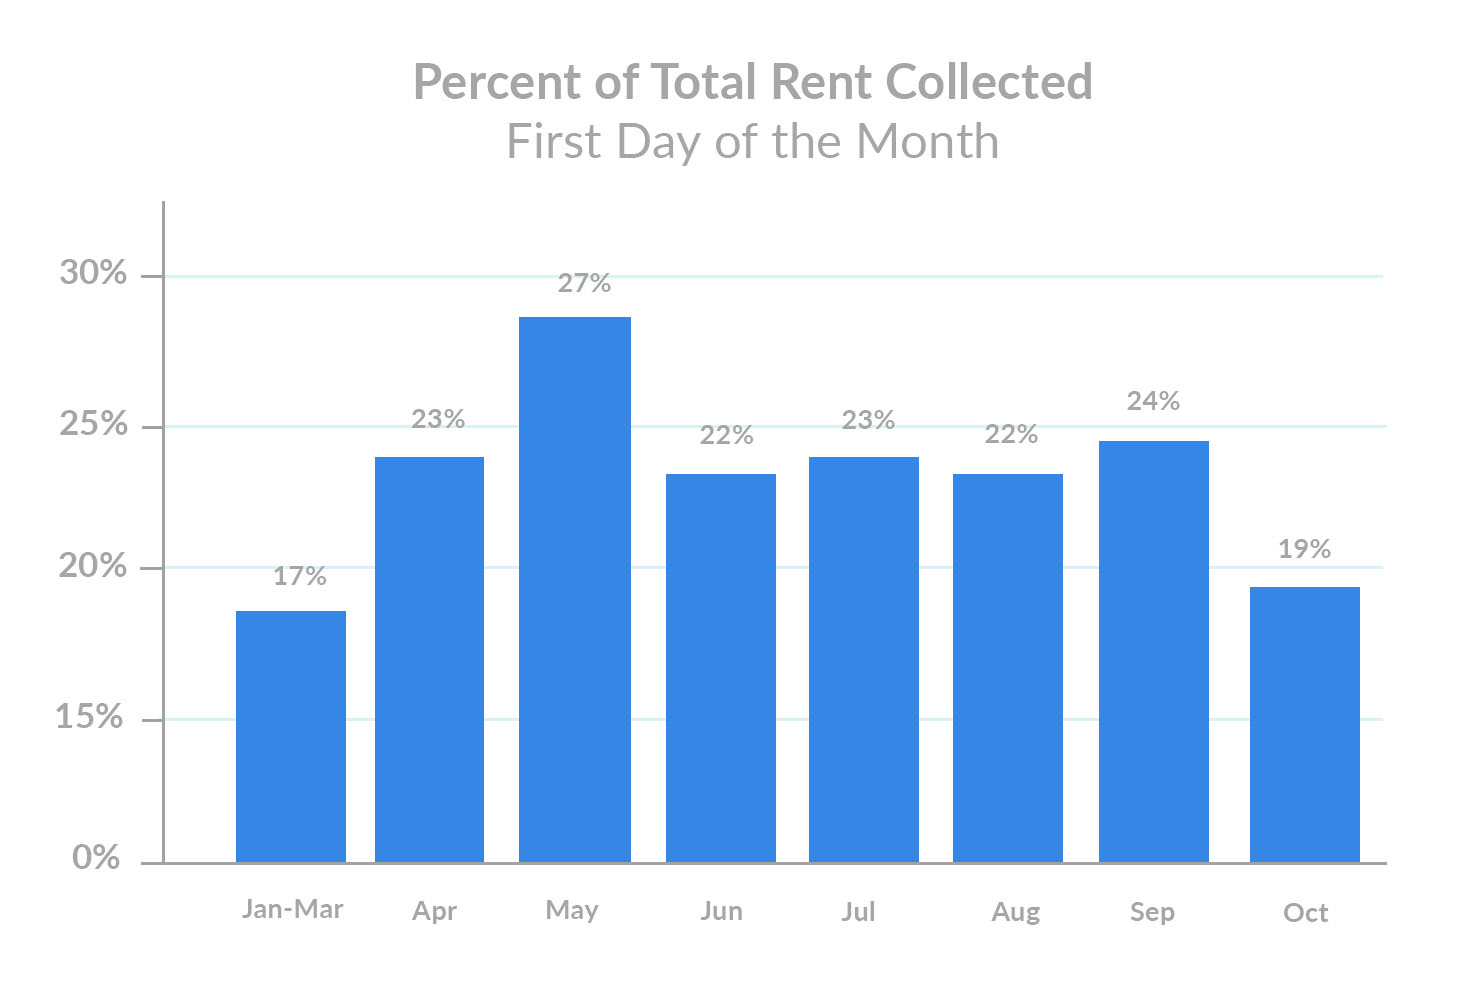 october-1st-rent-payments-percent-of-total-rent-collected